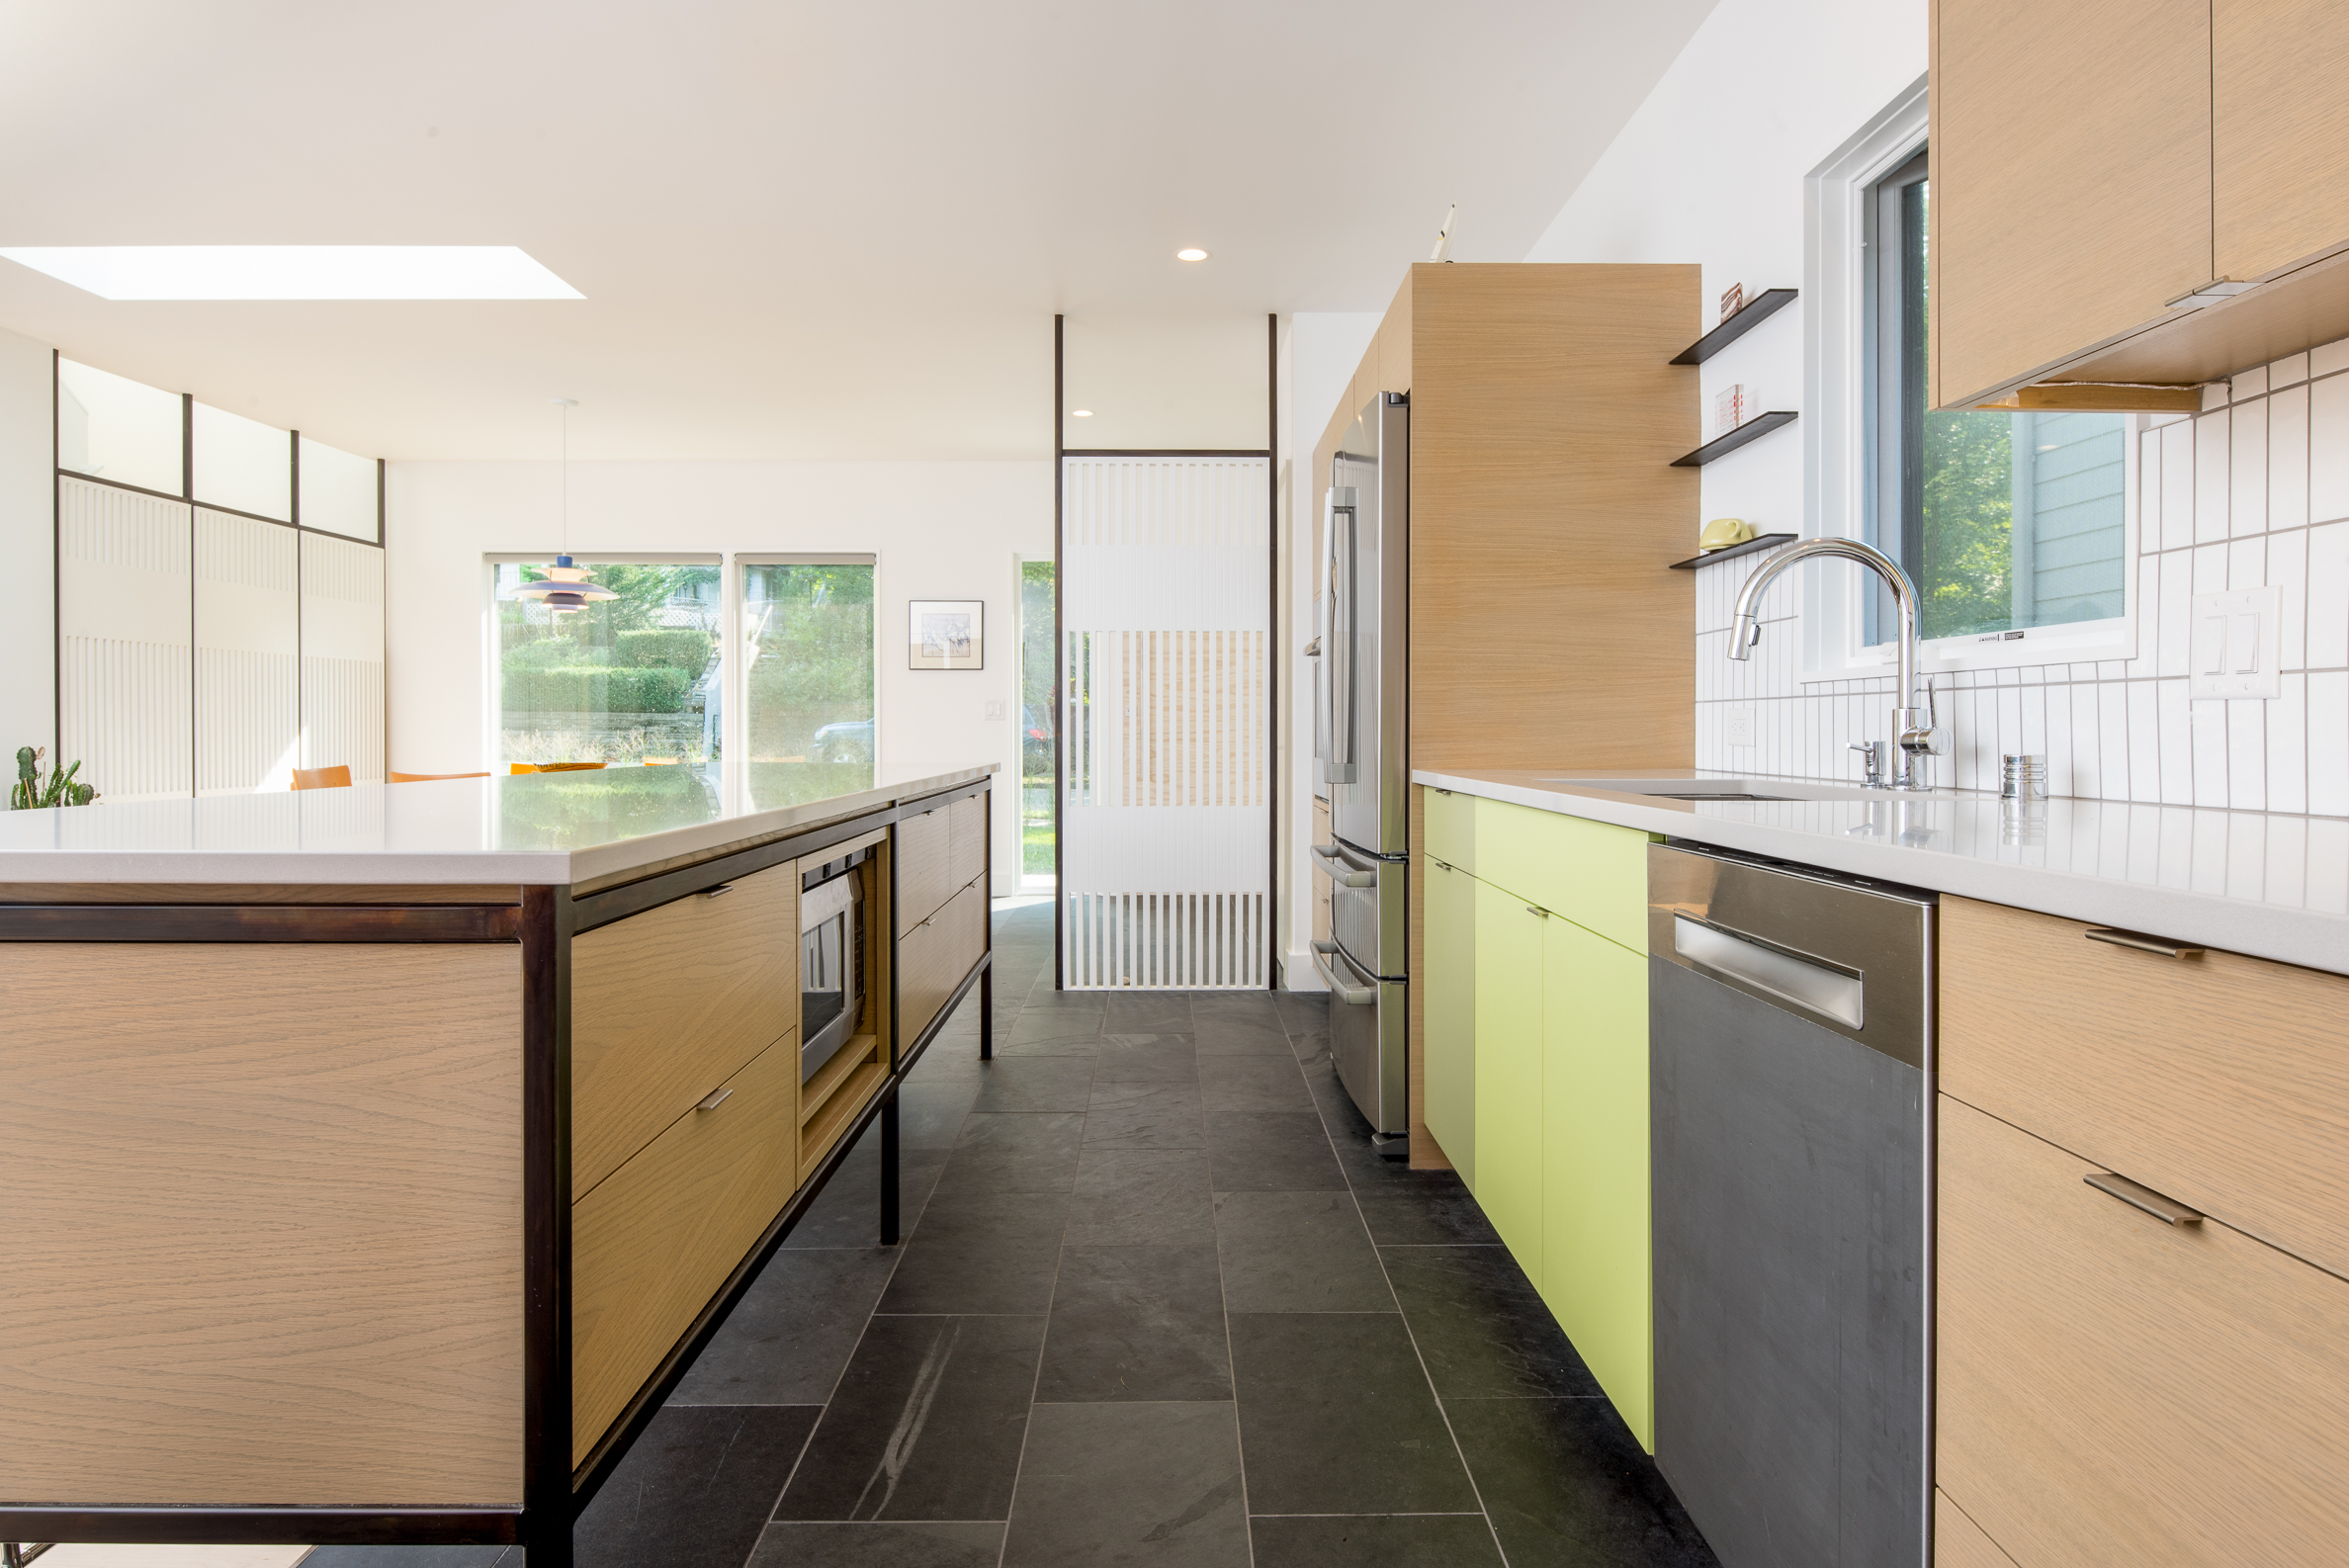 Custom midcentury kitchen with colorful cabinetry and steel accents